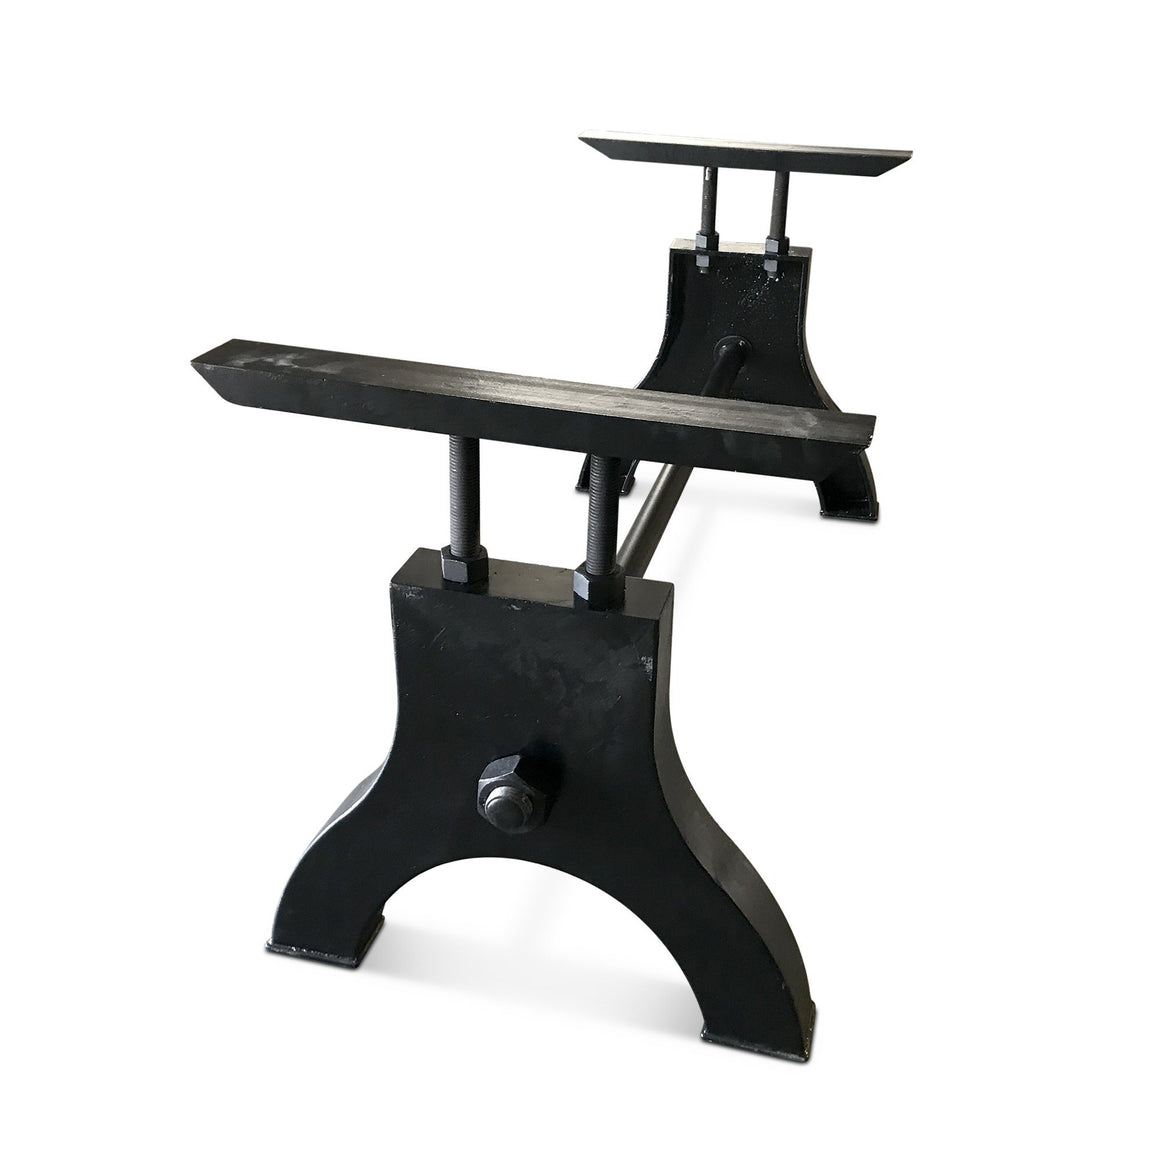 Industrial Table Base Cast Iron Adjustable Height Desk - Hure Inspired - Rustic Deco Incorporated